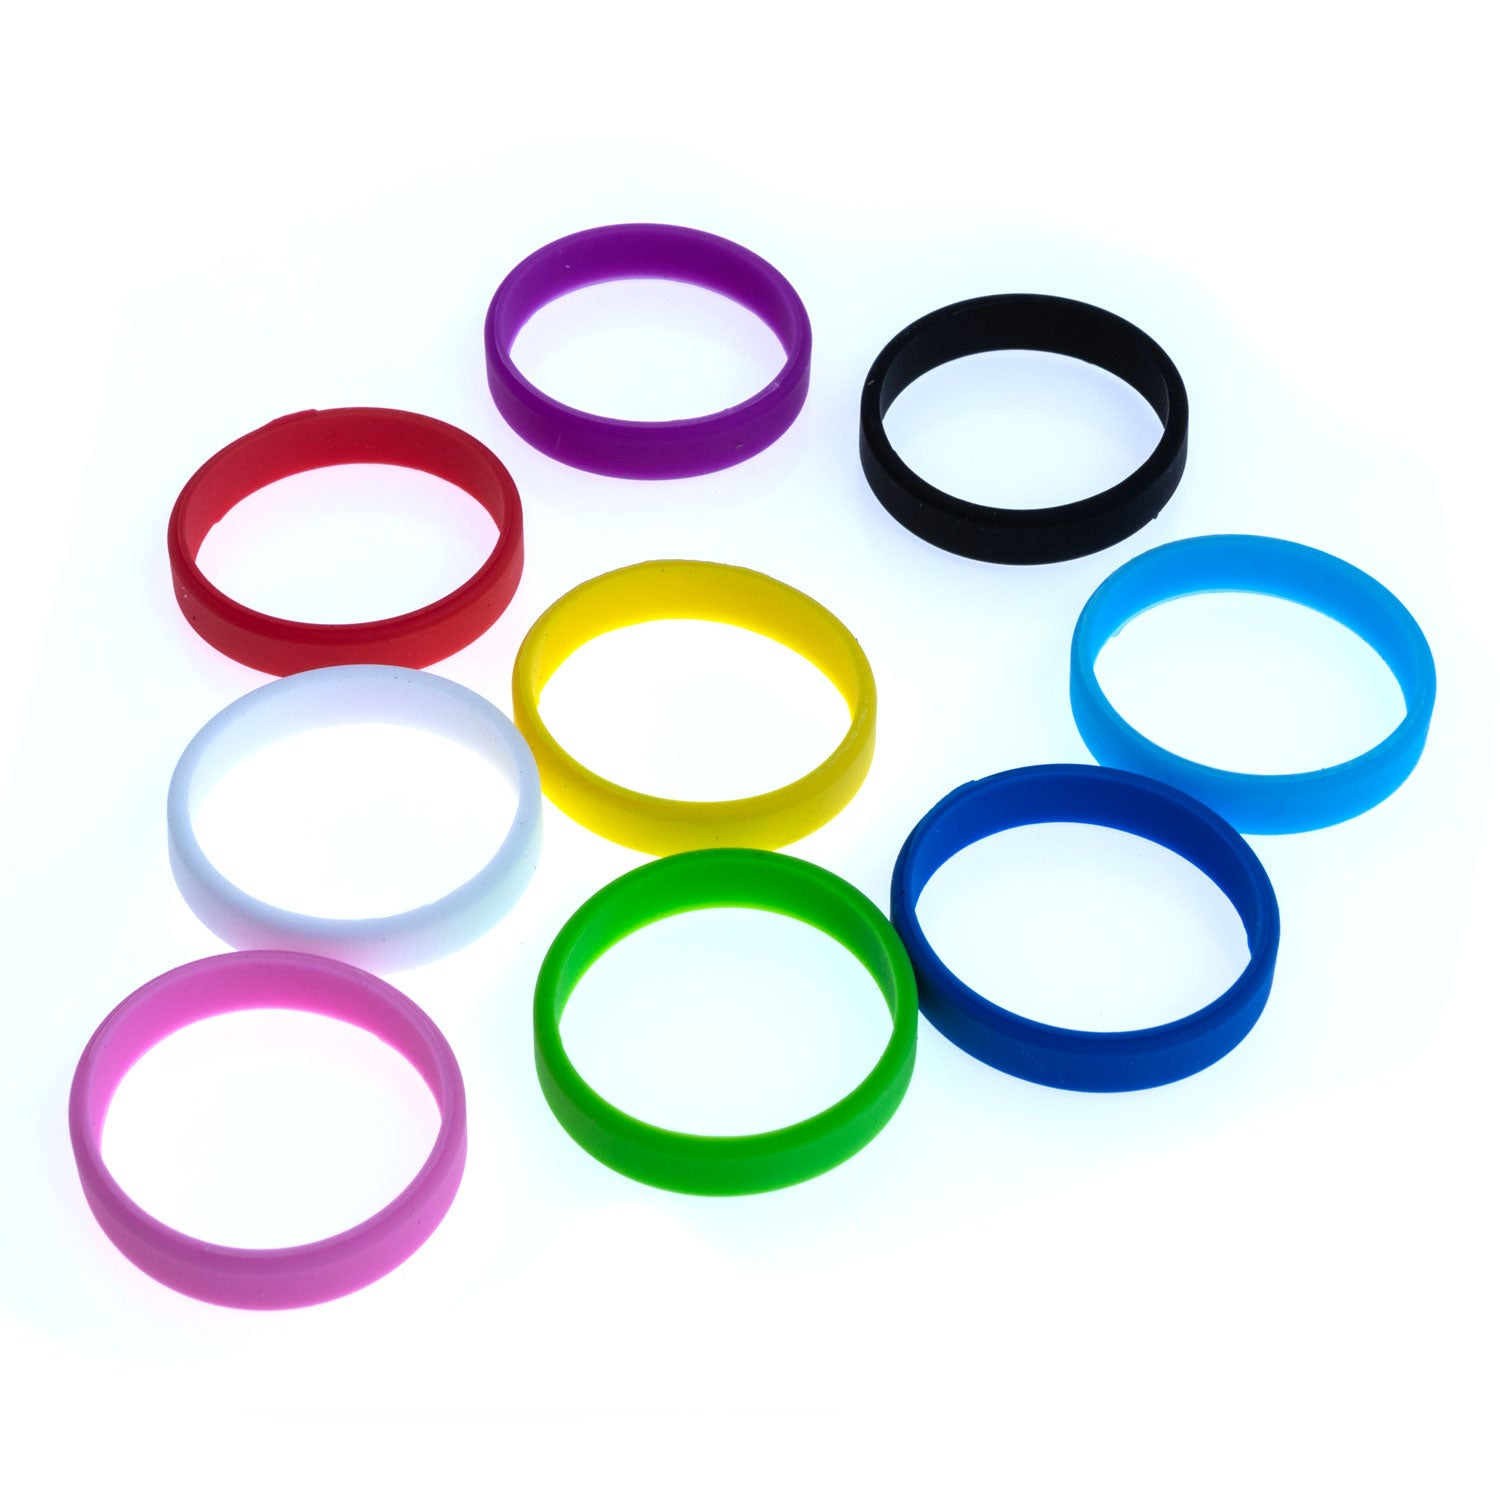 "Grifiti Band Joes 2"" x 0.25"" Silicone Bands (20pk) Cooking, Posters, Boxes, Wraps 1.25"" Diameter - Grifiti"